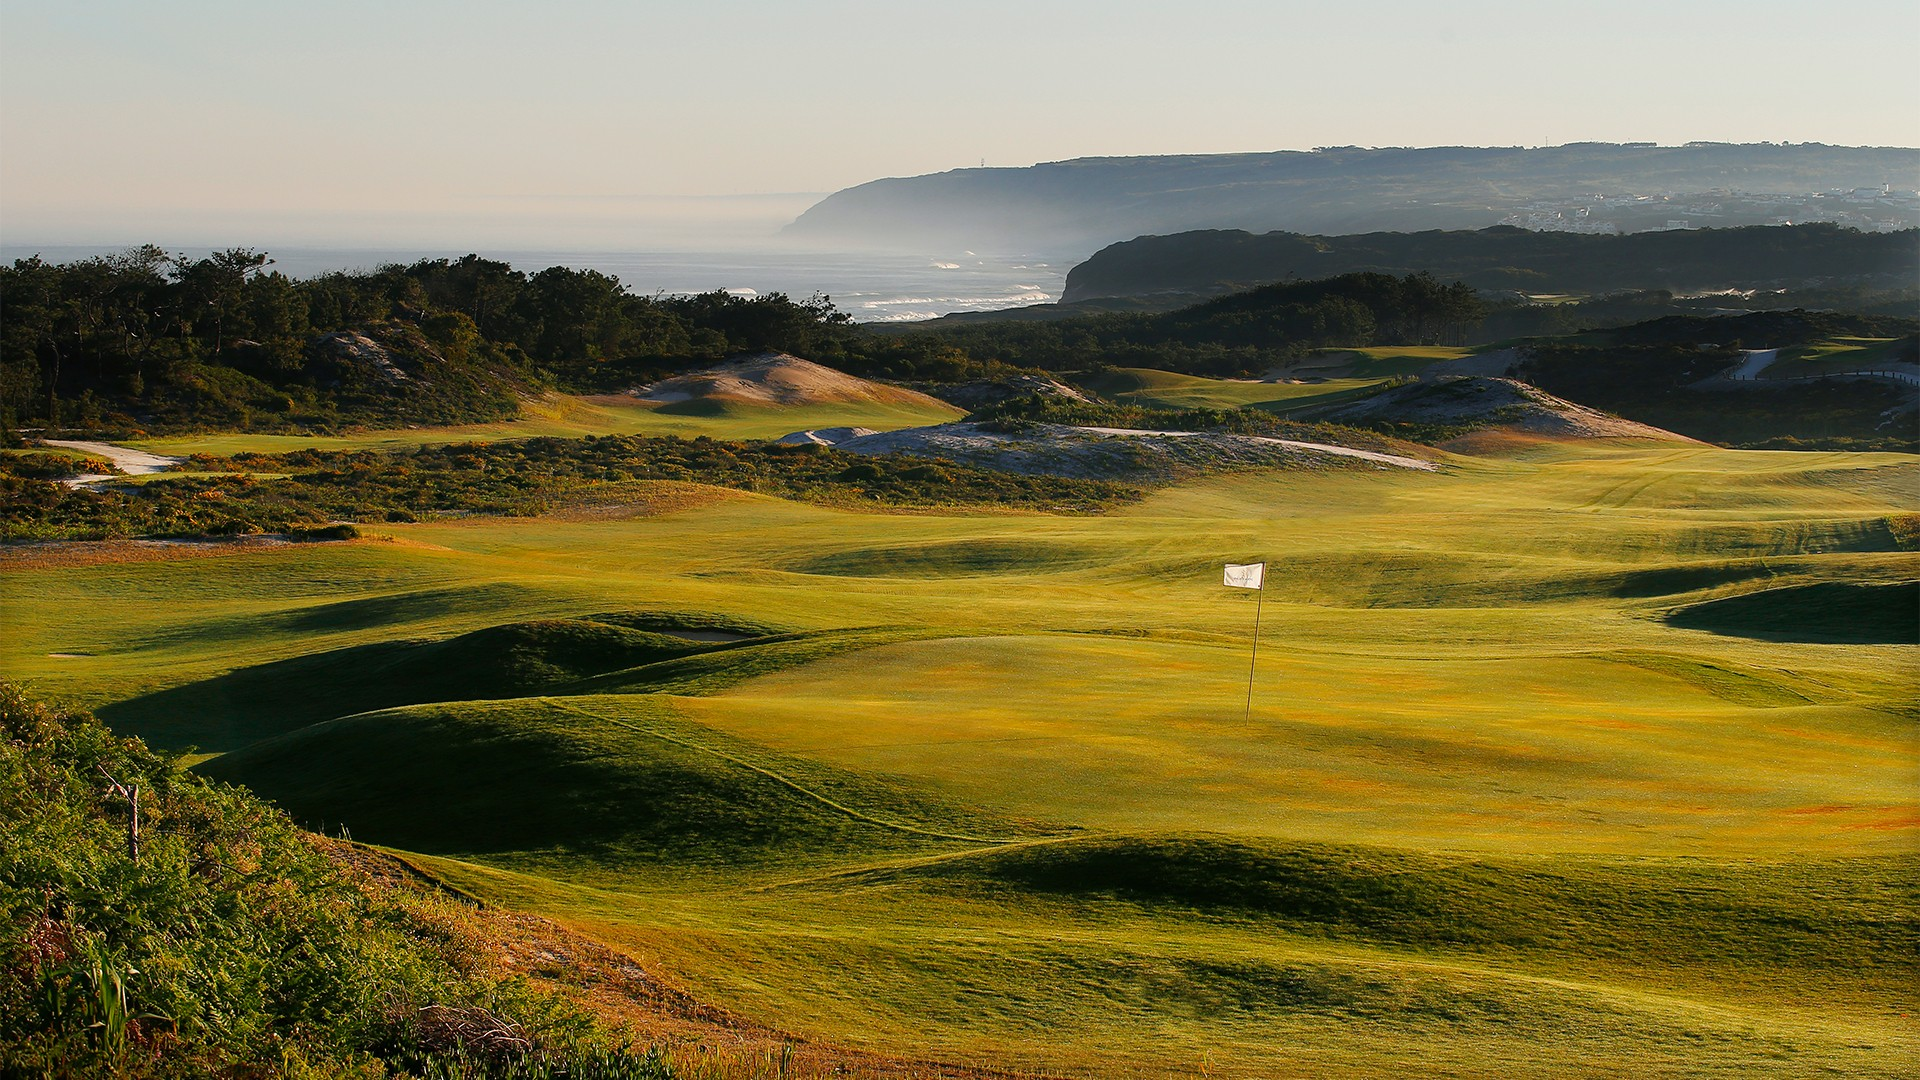 West Cliffs golf course, Lisbon, Portugal